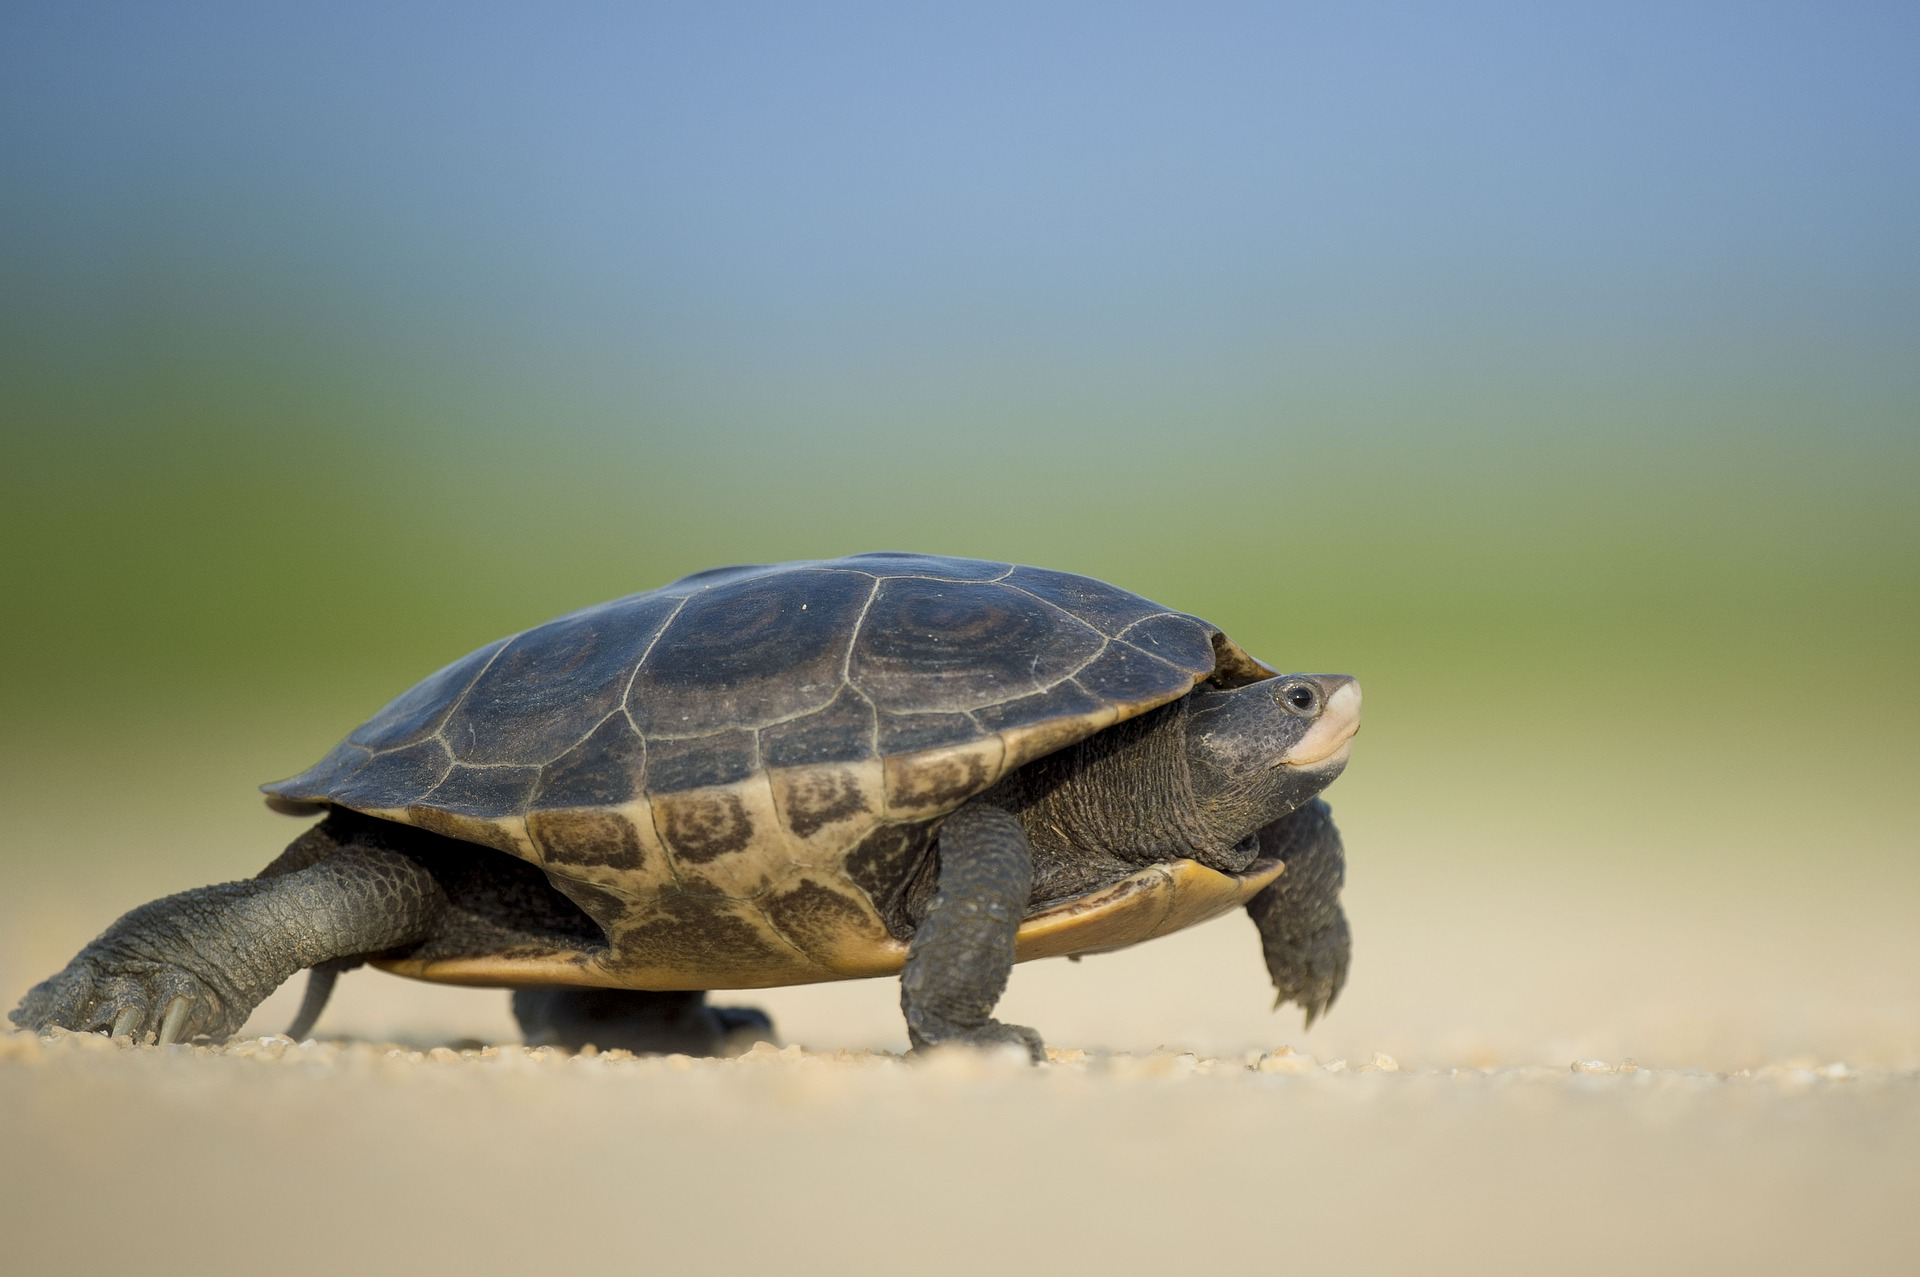 Slow and steady wins the race using clickfunnels